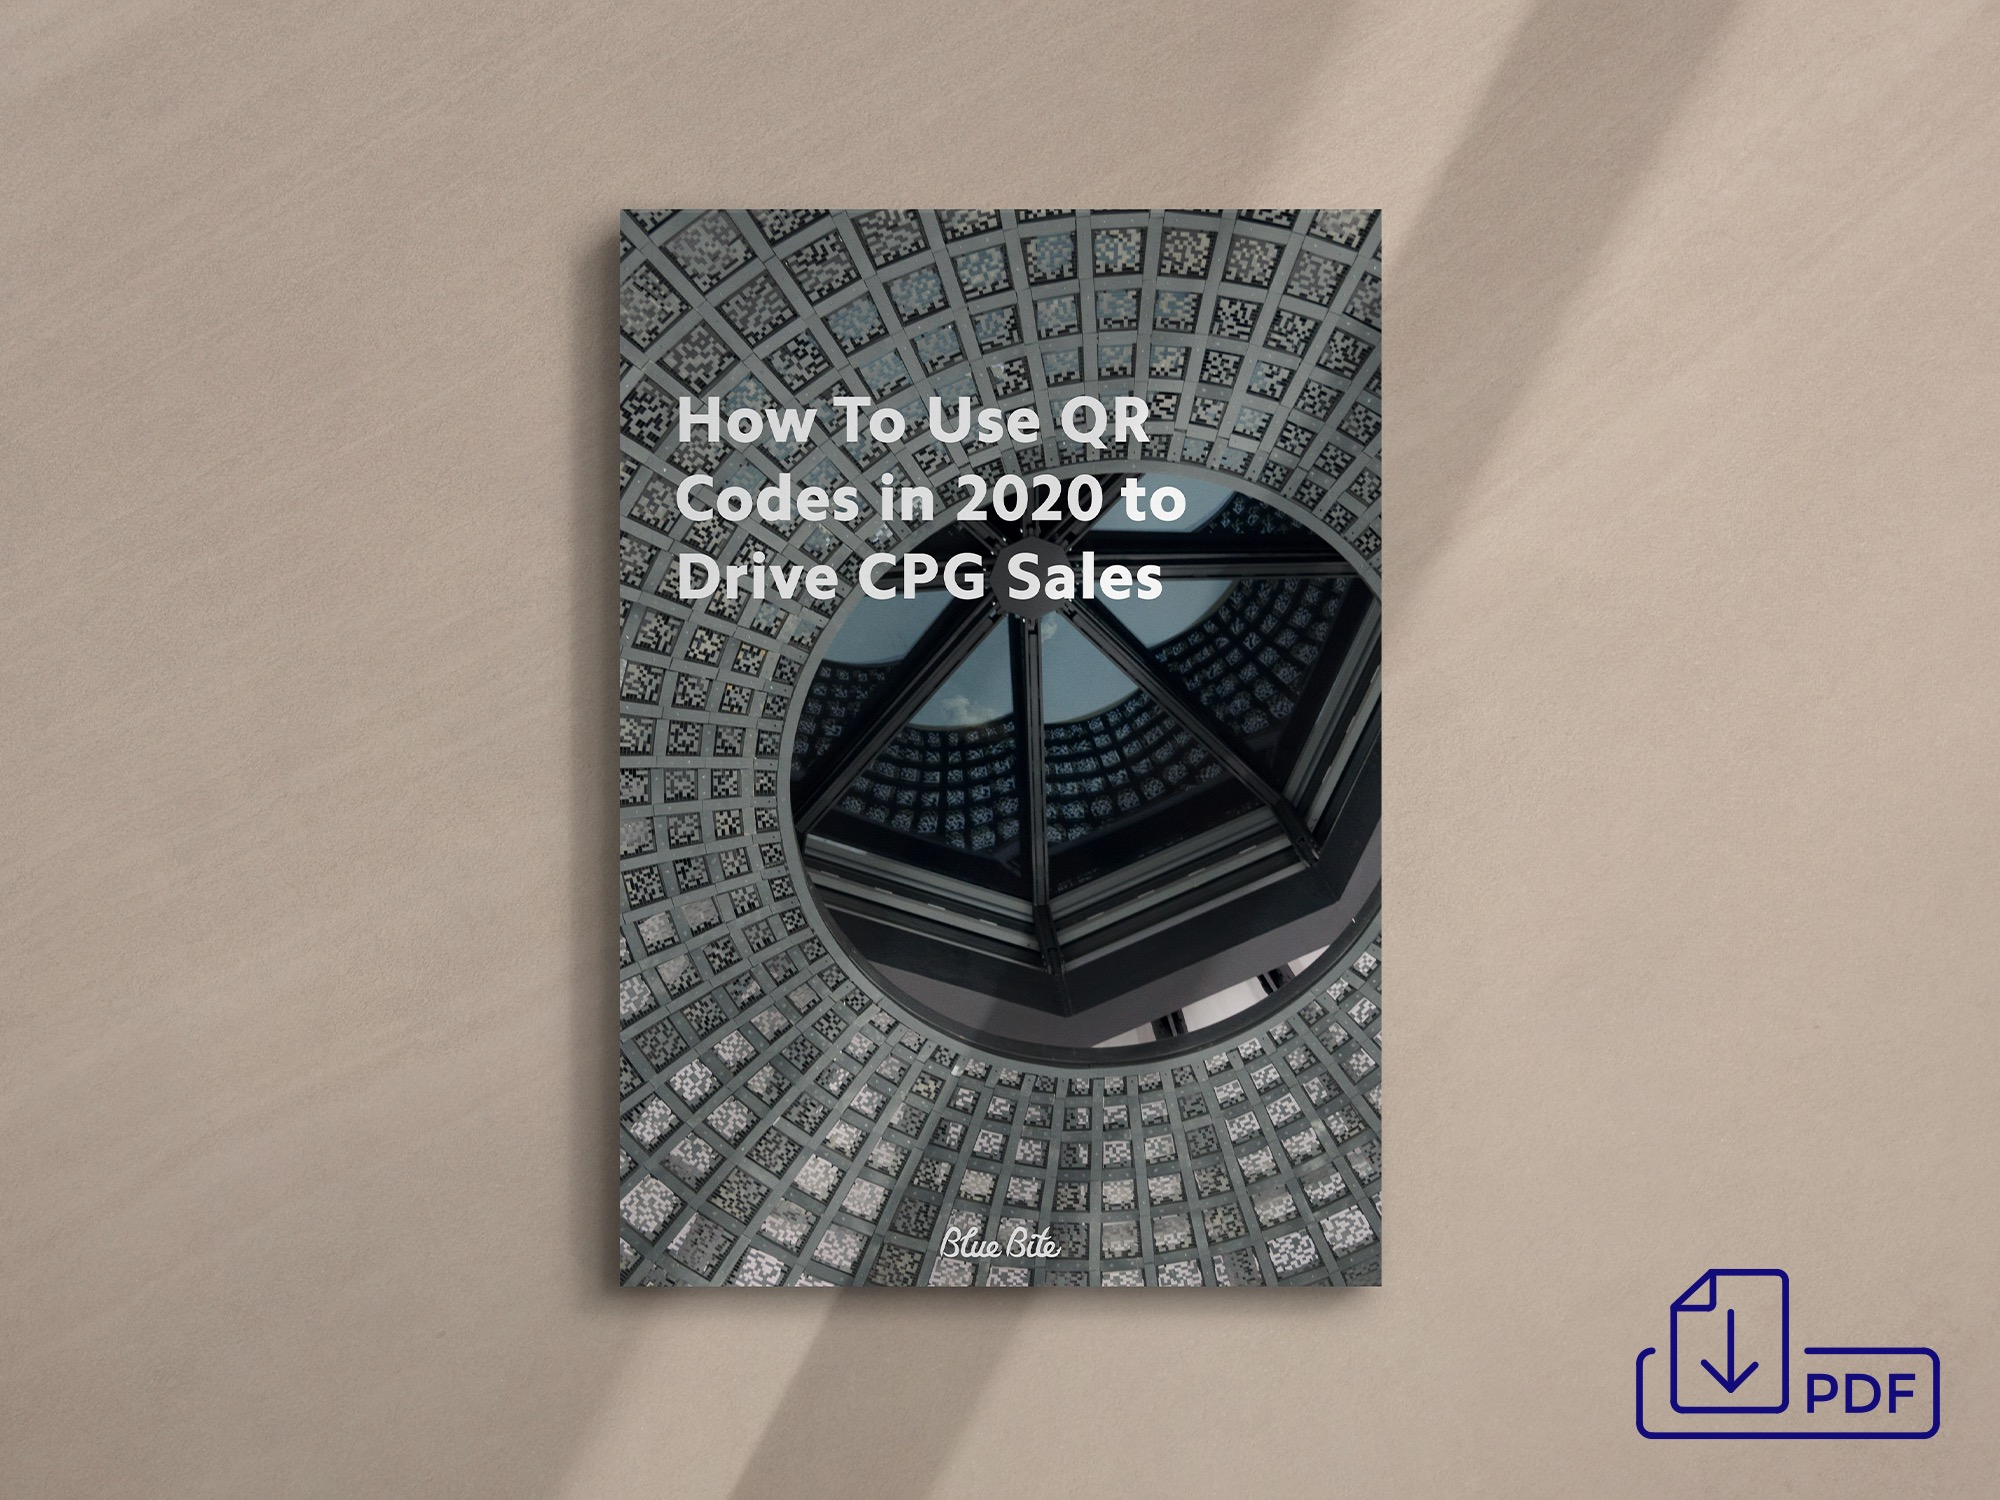 Get the How to Use QR codes in 2020 to Drive CPG Sales